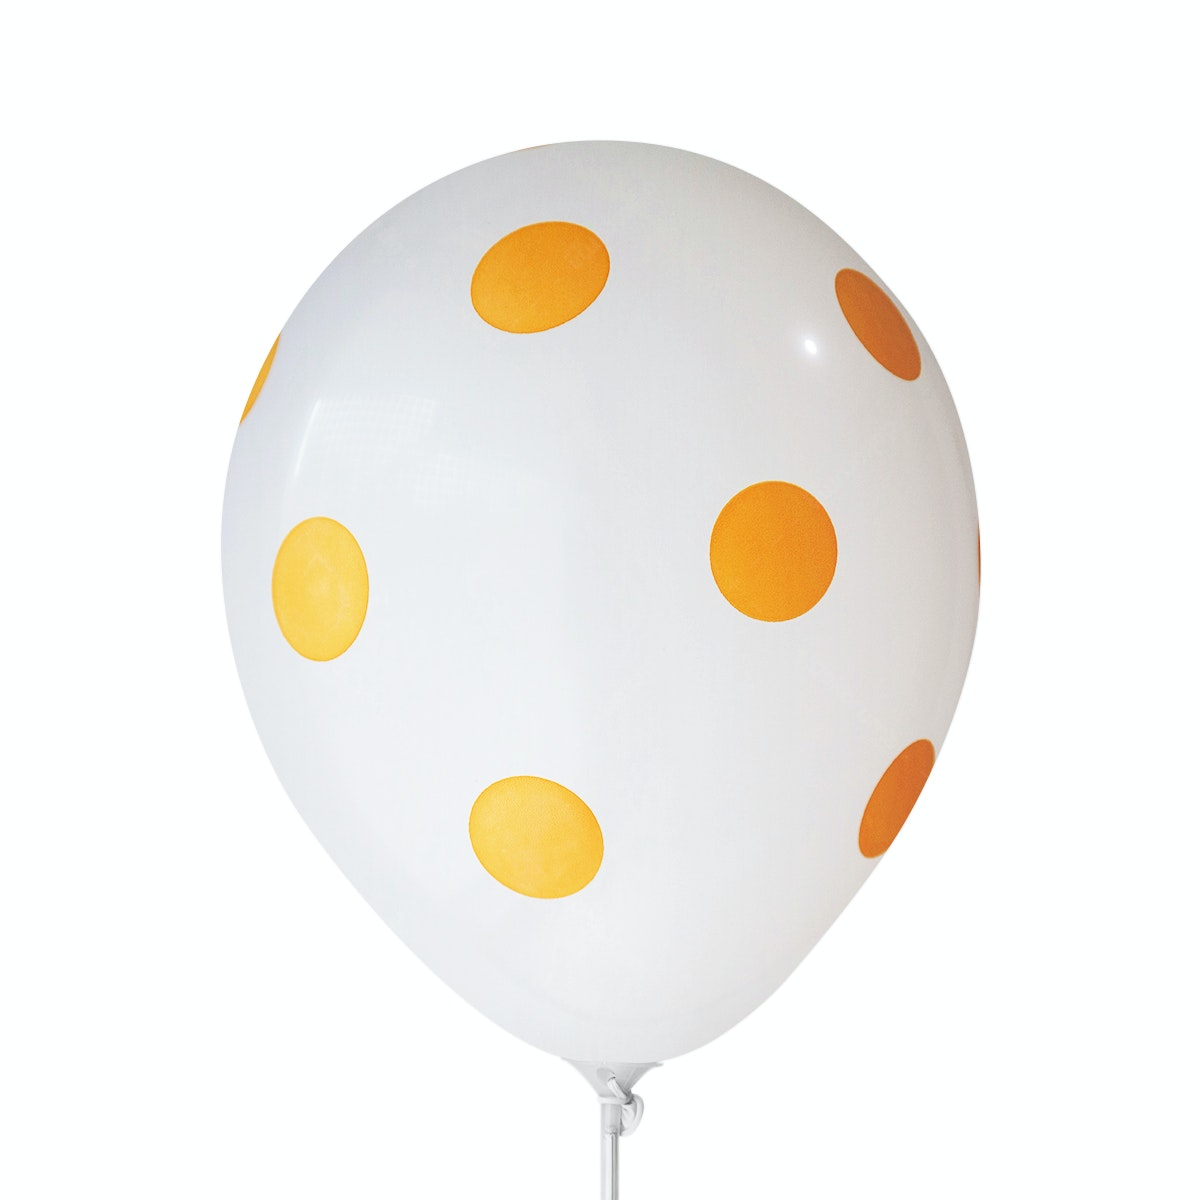 Adalima Balloon Balloon Polkadot White Golden Yellow QQ